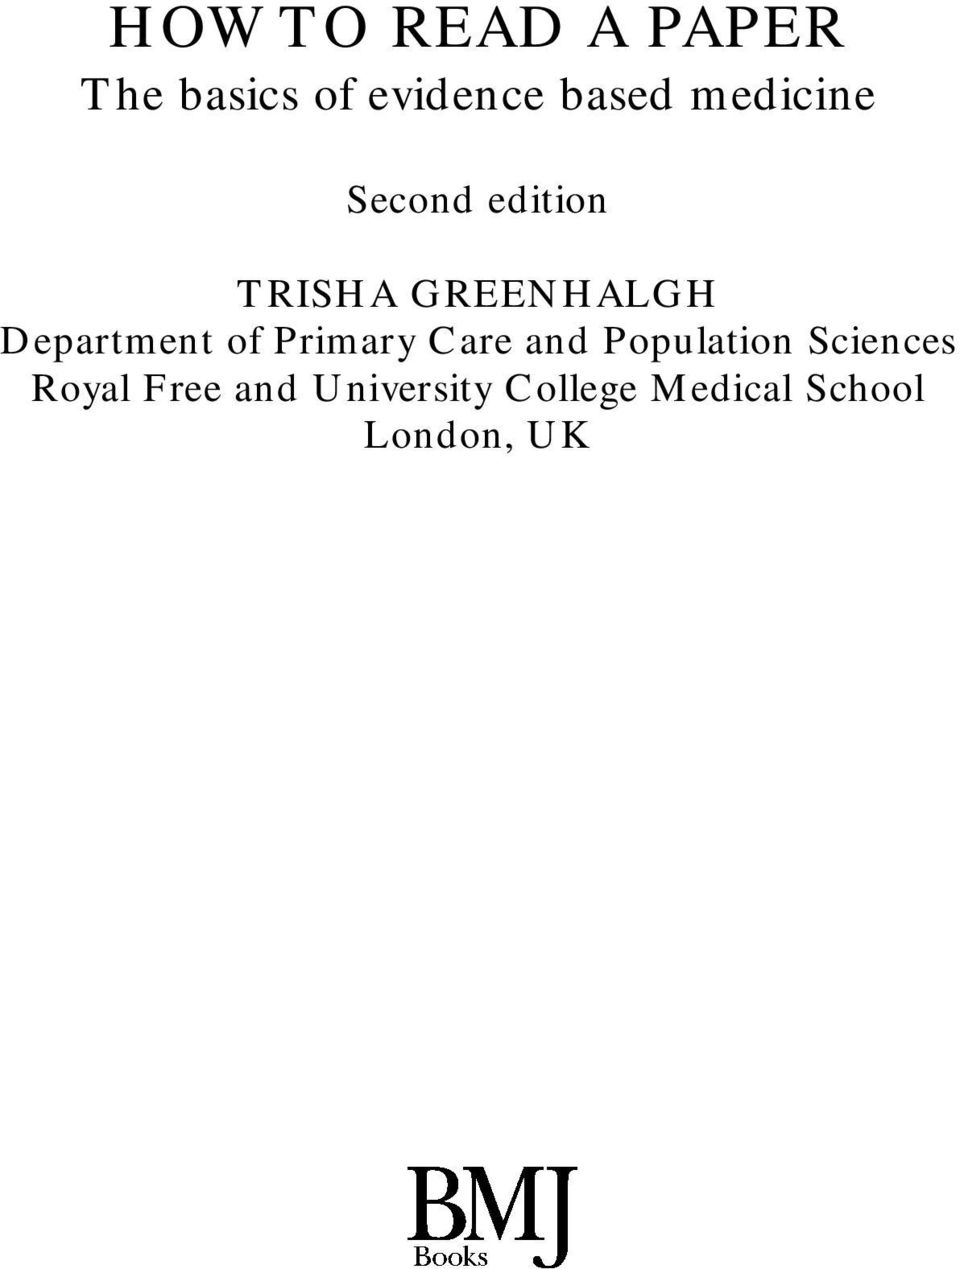 Department of Primary Care and Population Sciences